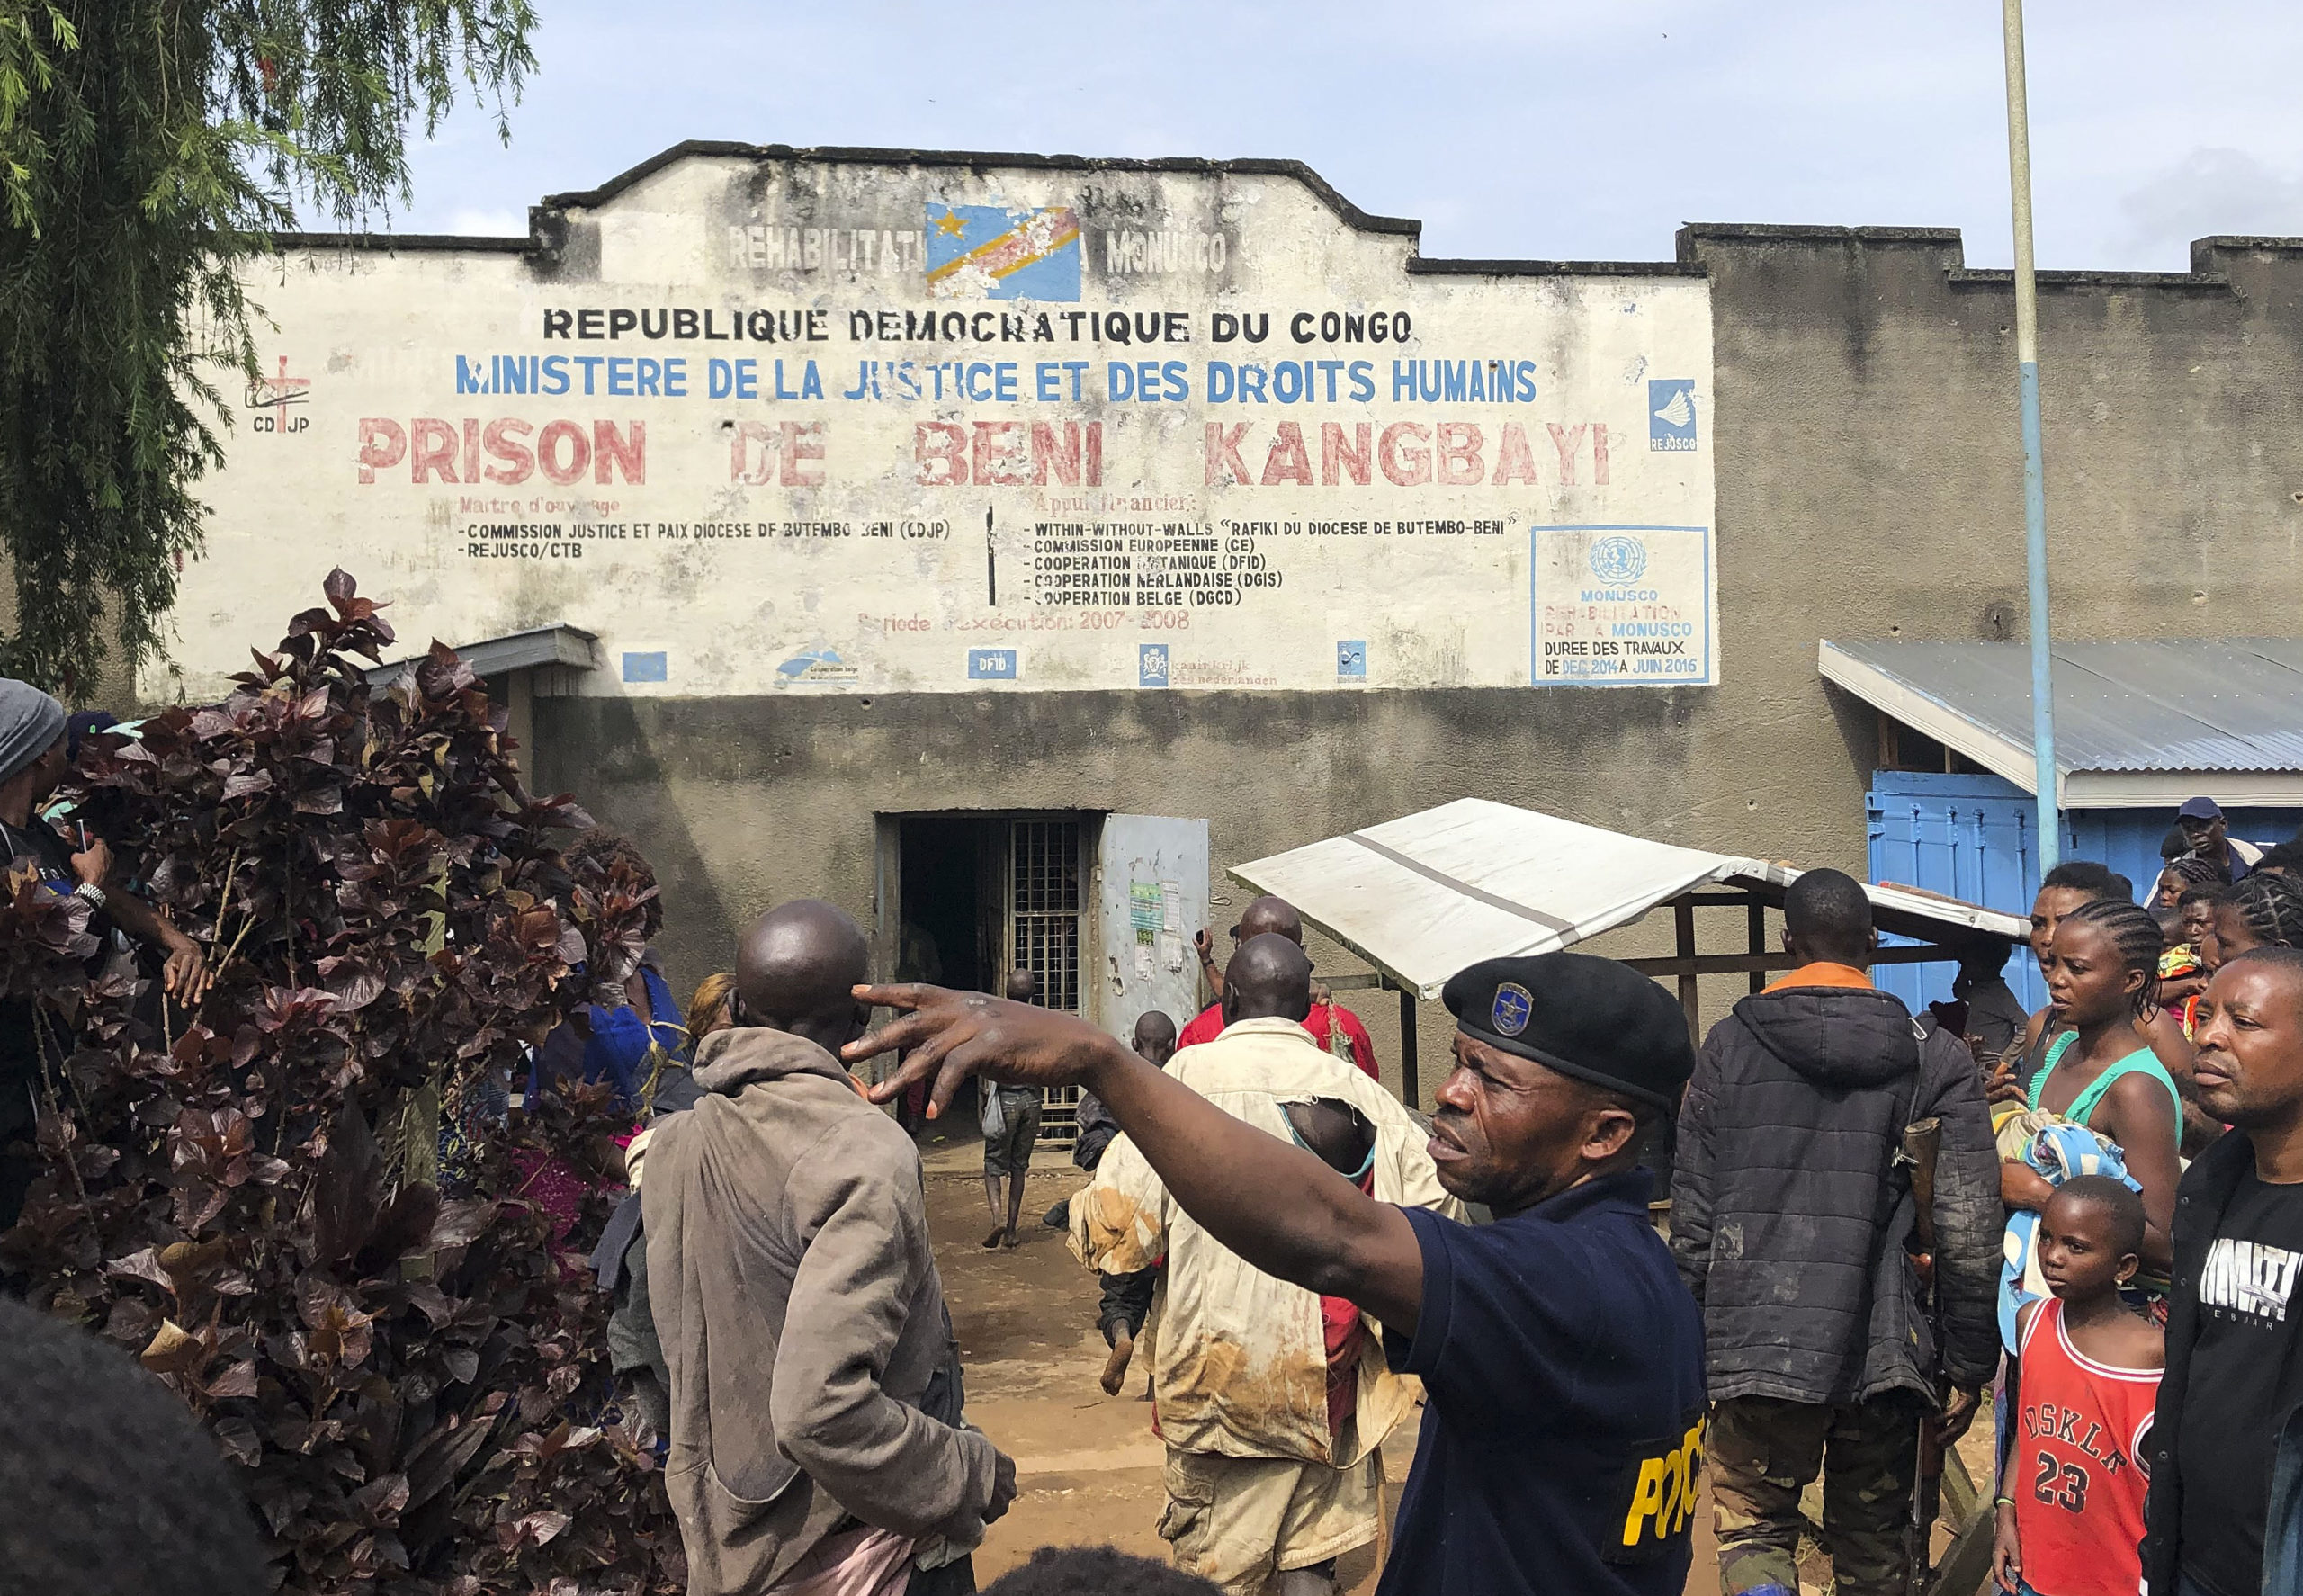 Congo: Armed men storm Congo prison, freeing over 900 inmates in coordinated attack - Tatahfonewsarena